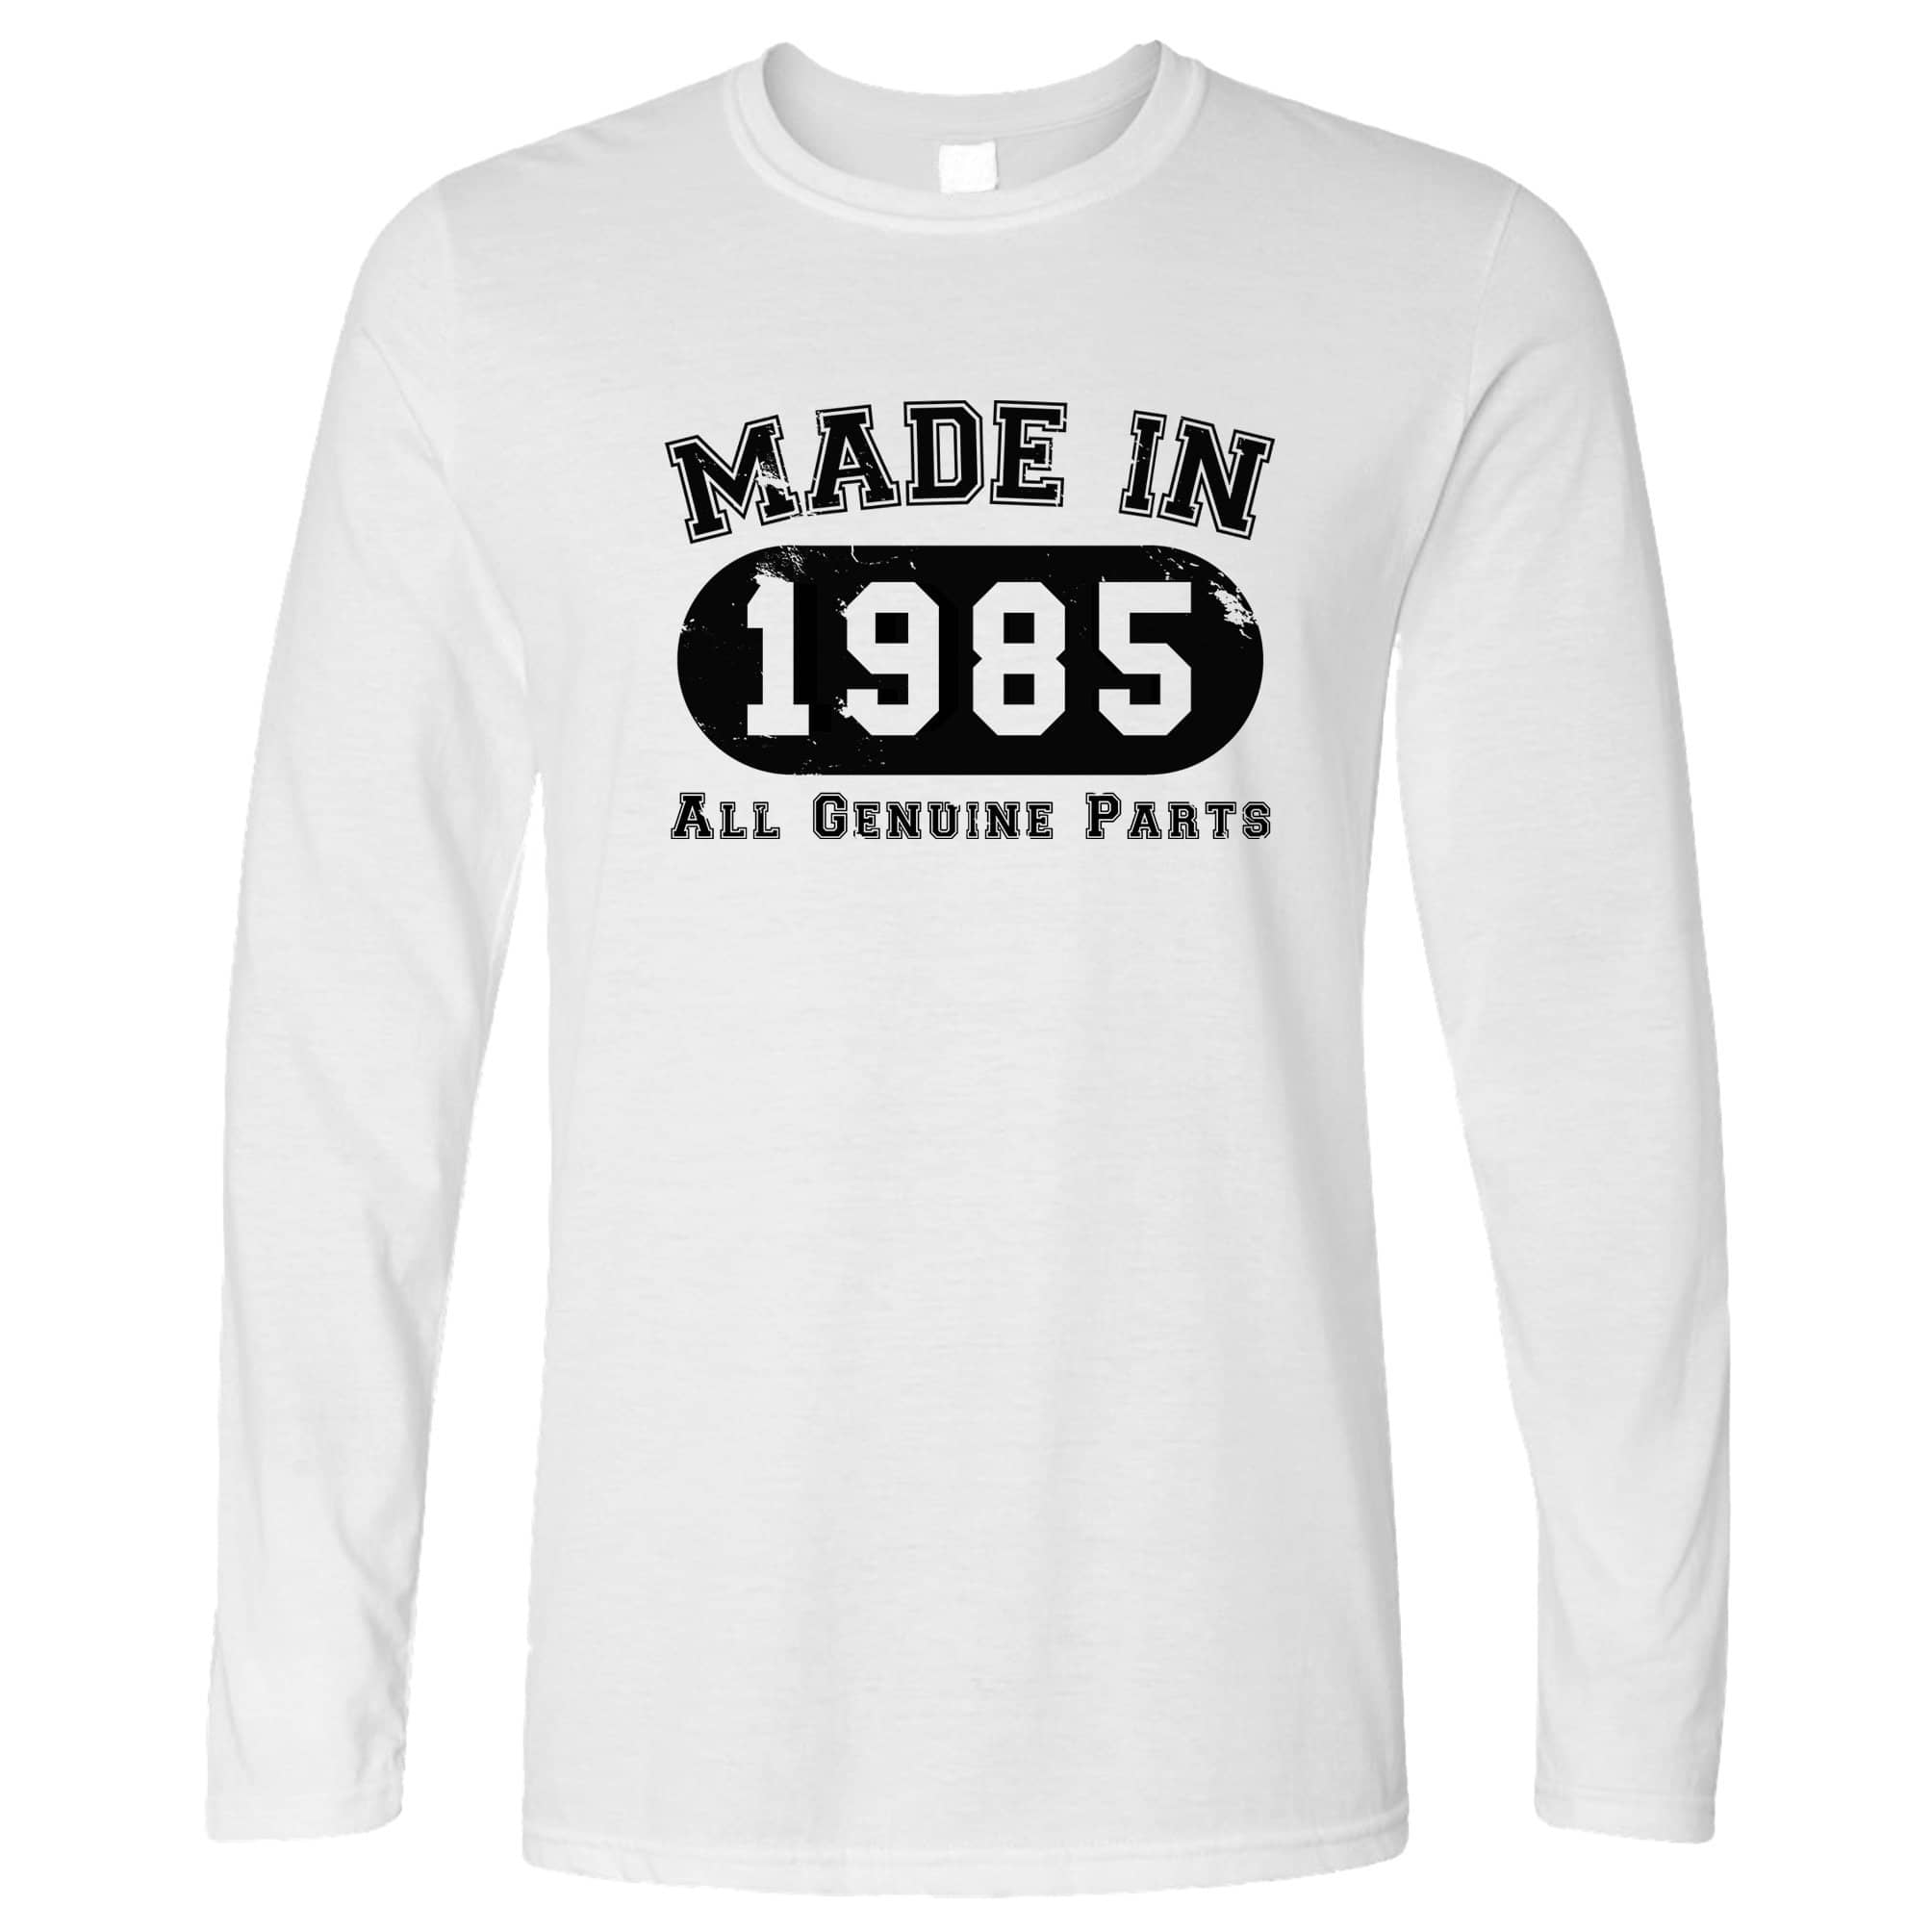 Birthday Long Sleeve Made in 1985 All Genuine Parts T-Shirt